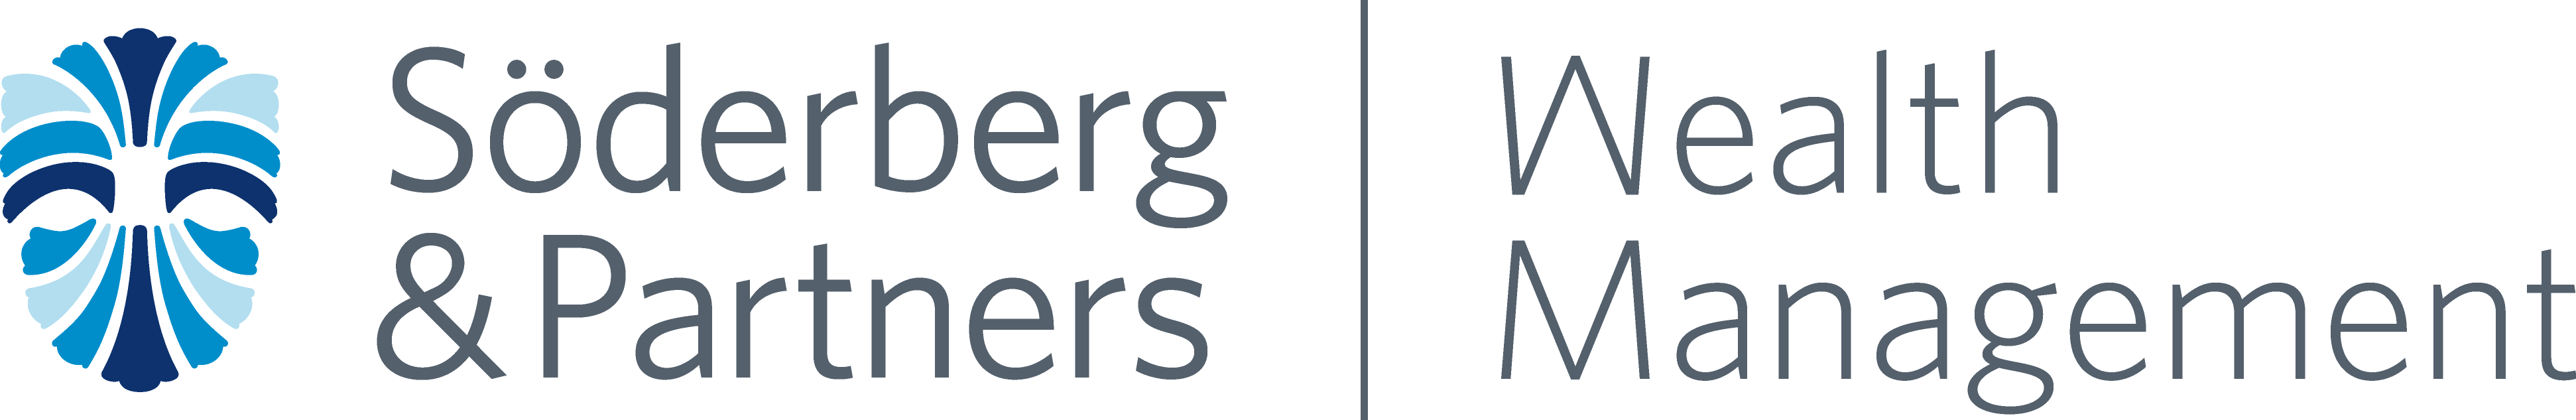 Söderberg & Partners Wealth Management